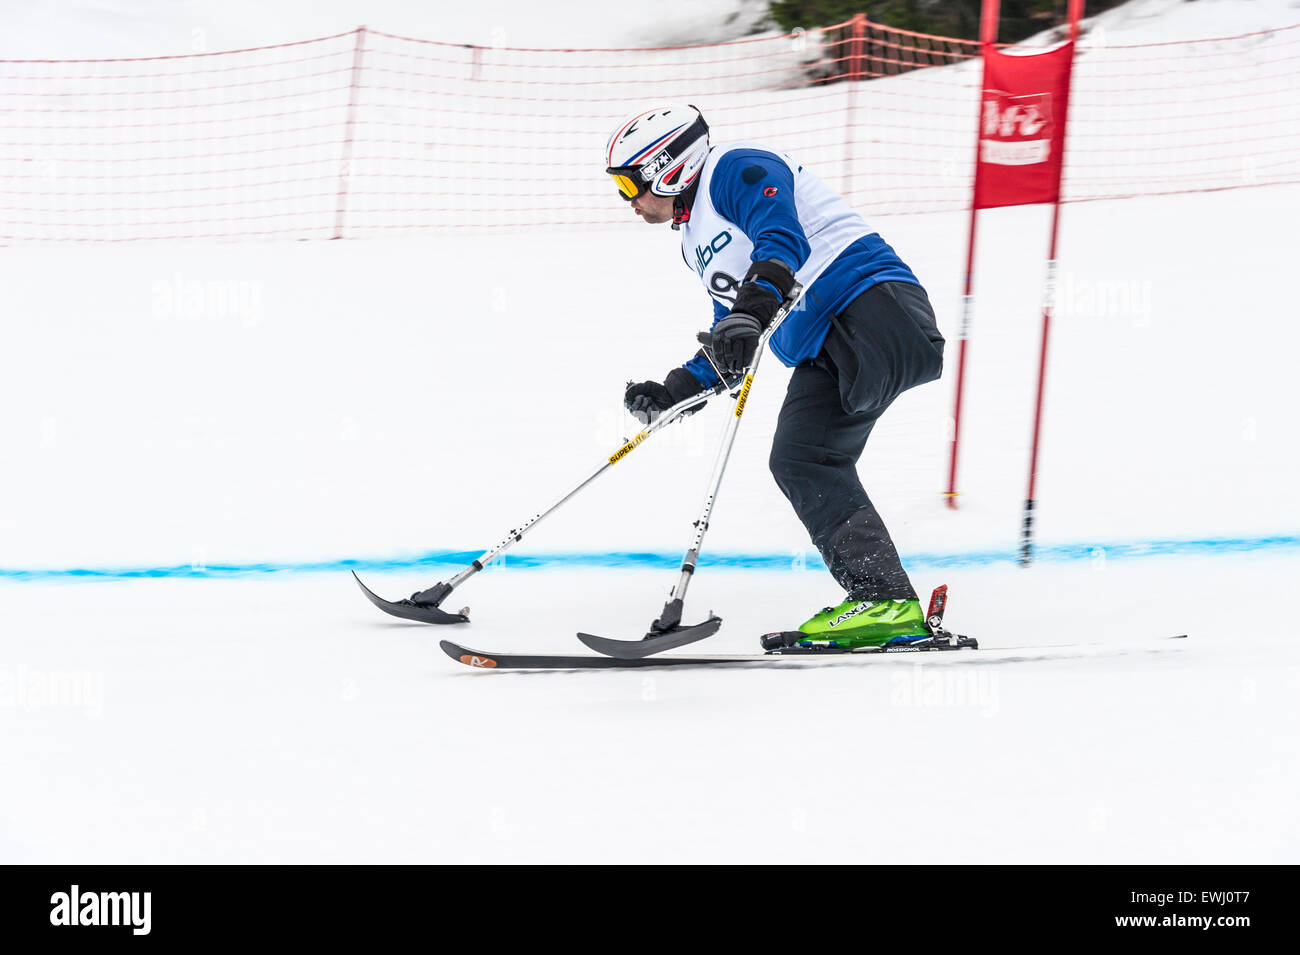 A one-legged skier racing downhill in a giant slalom race - Stock Image